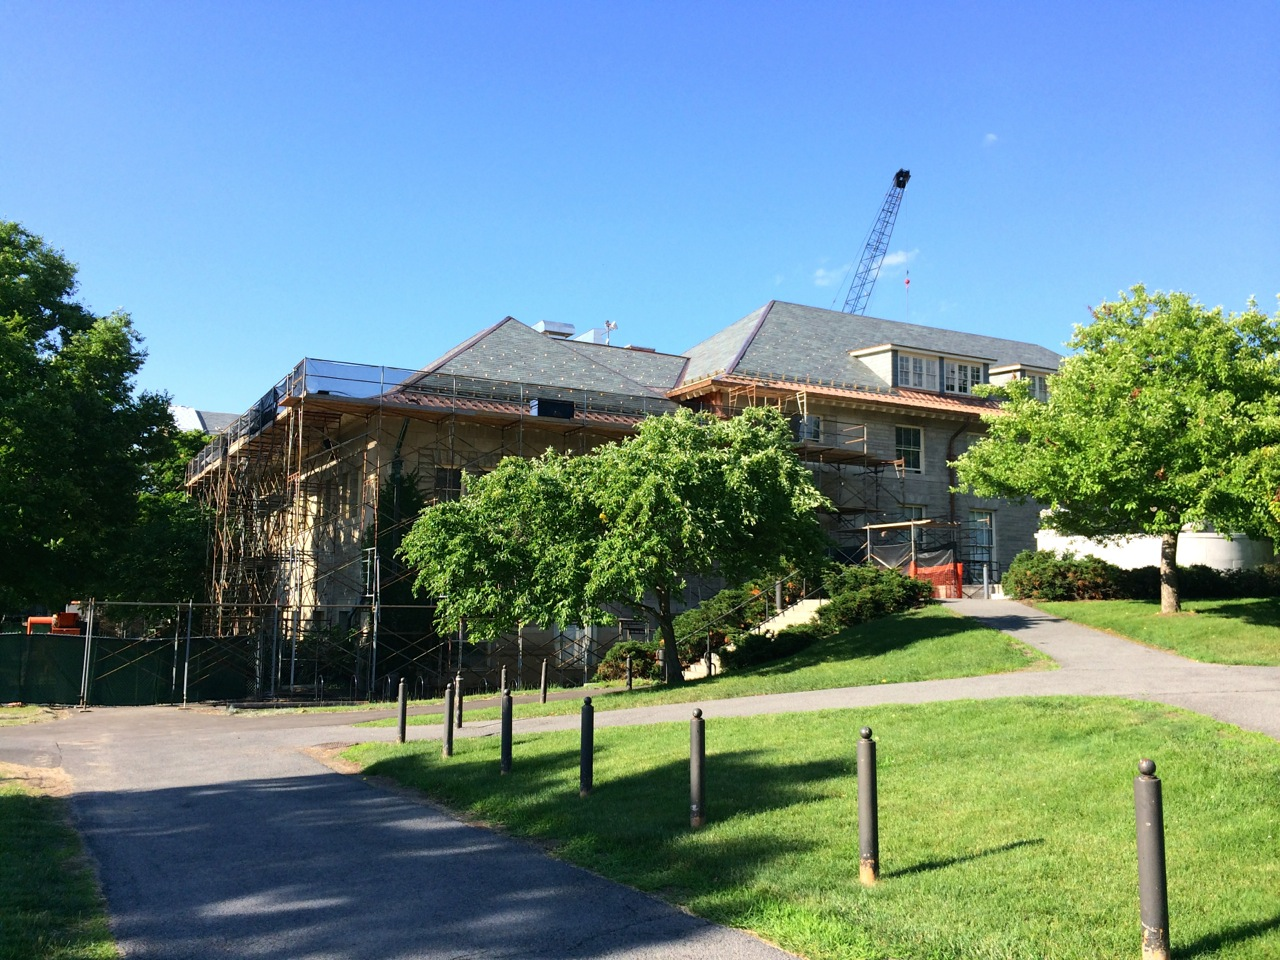 Klarman-Goldwin-Hall-Cornell-Ithaca-07021405